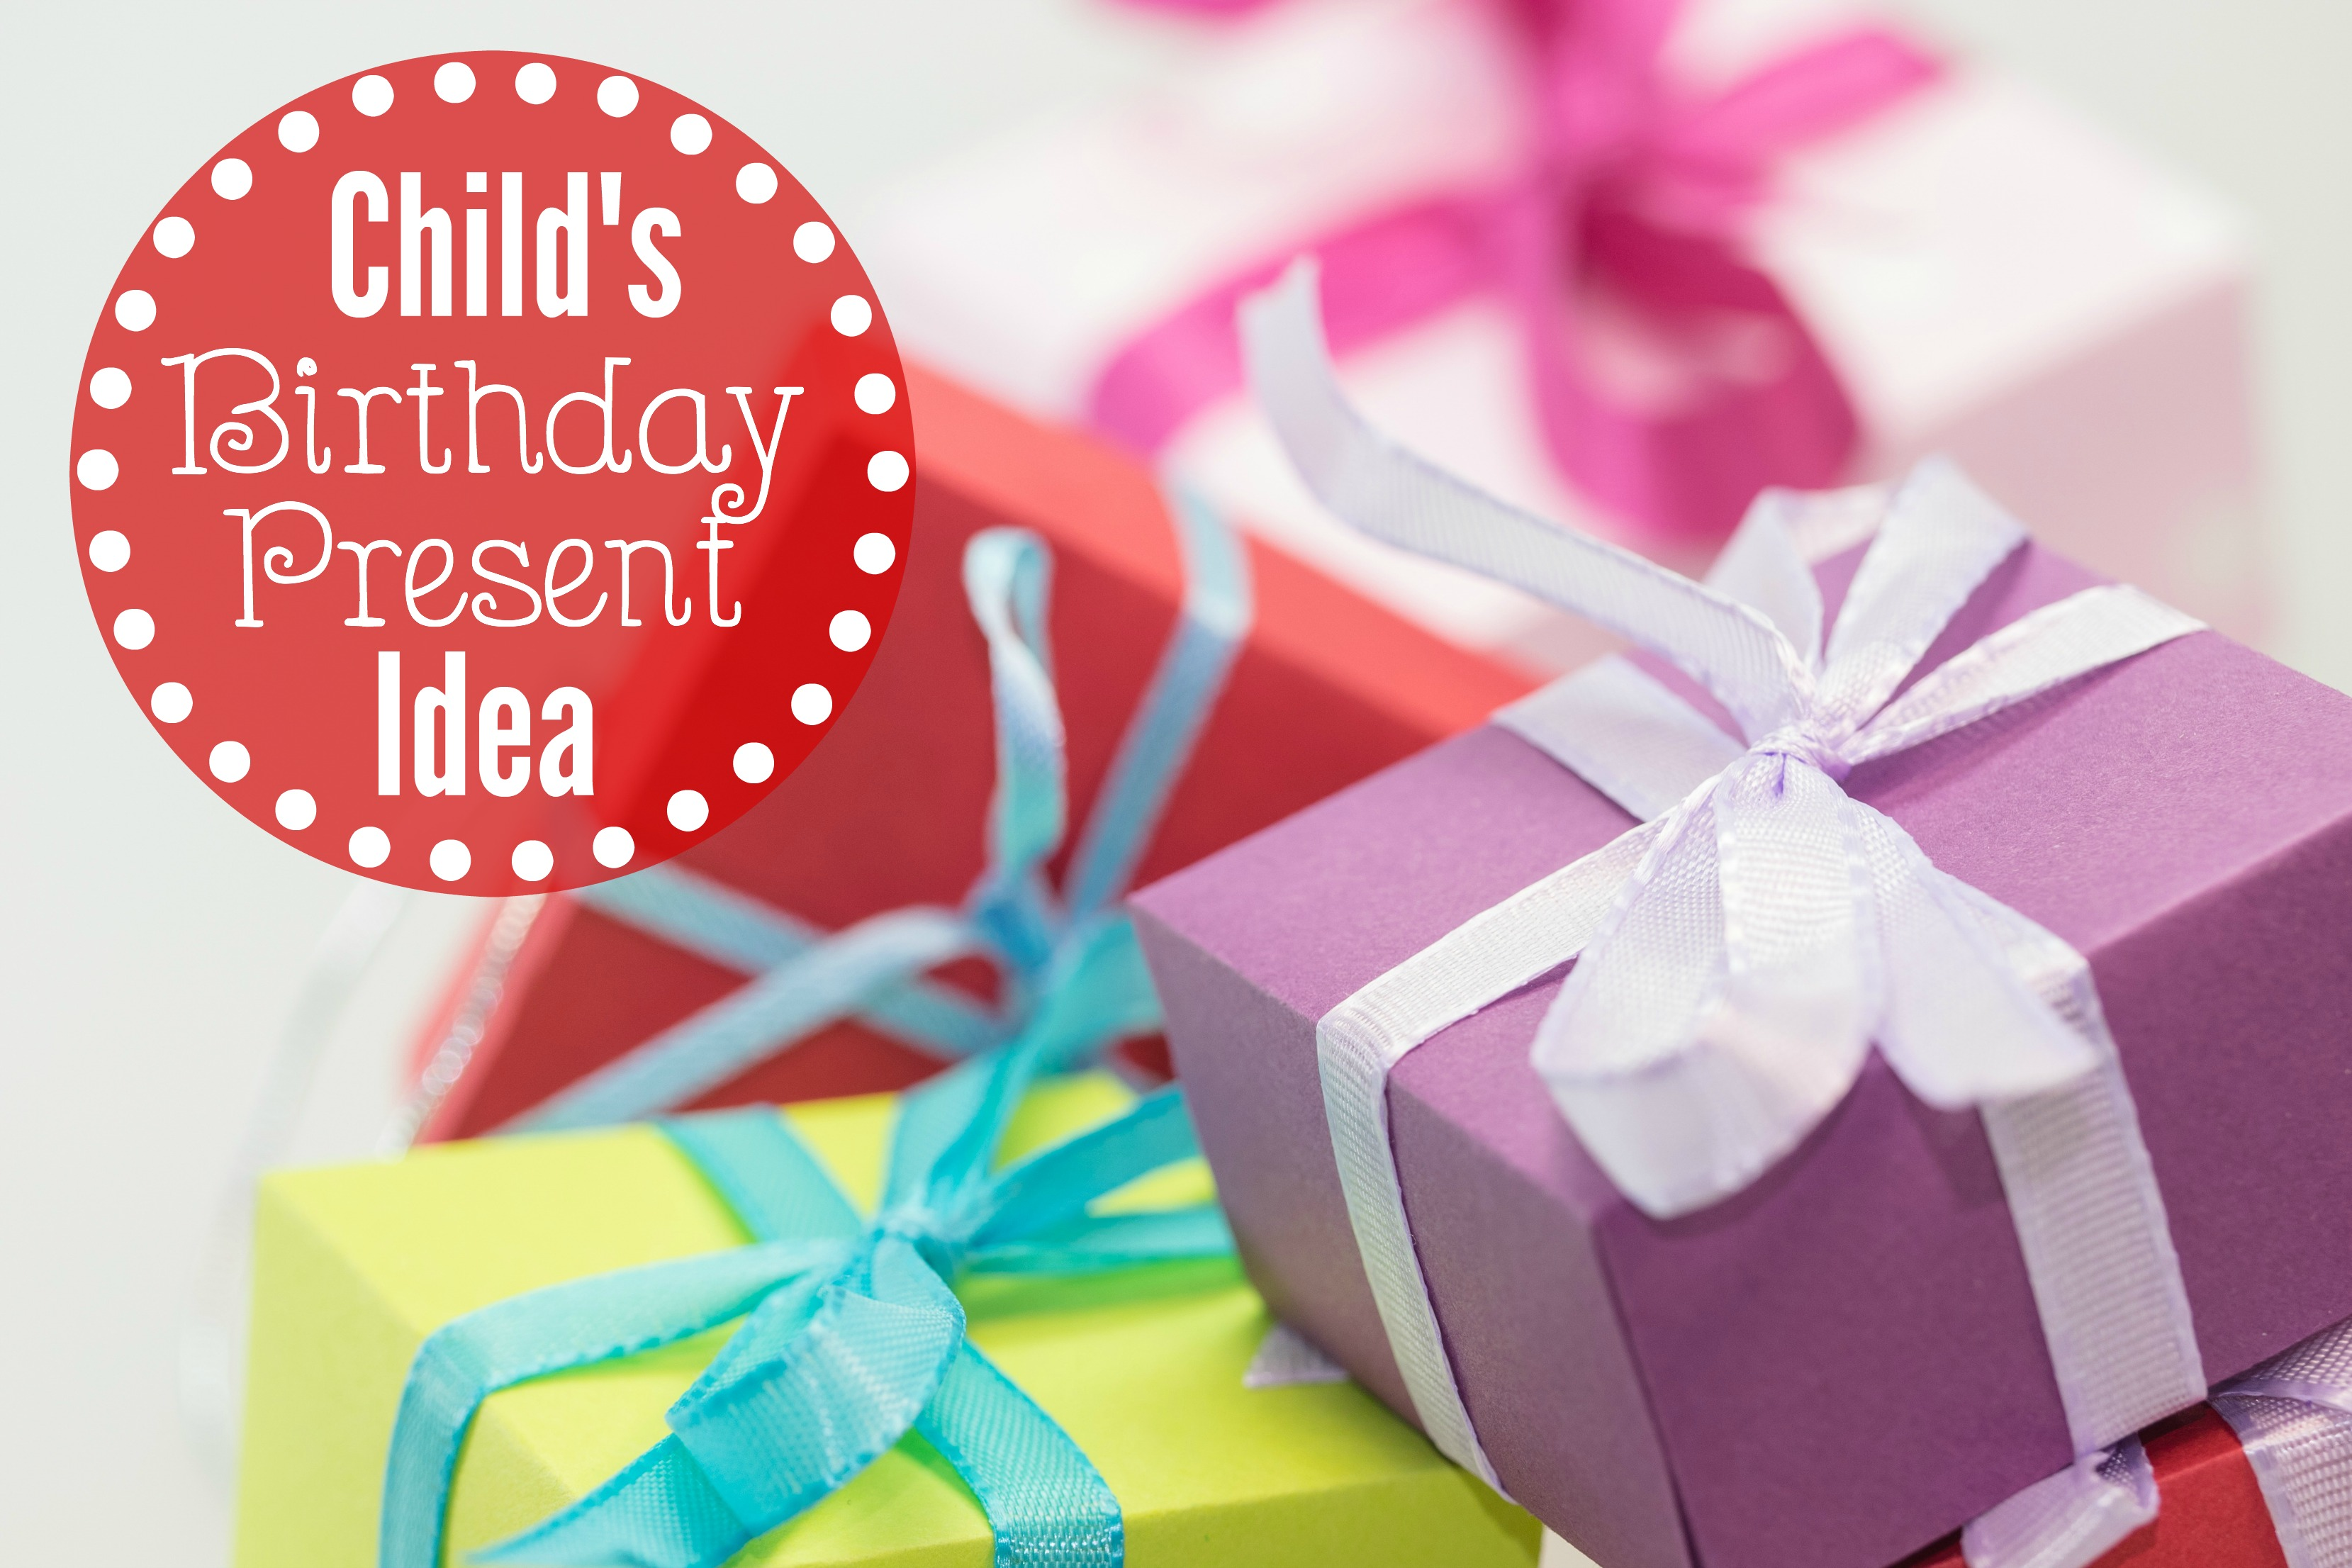 Here is a fabulous idea of a birthday presnet for a child!